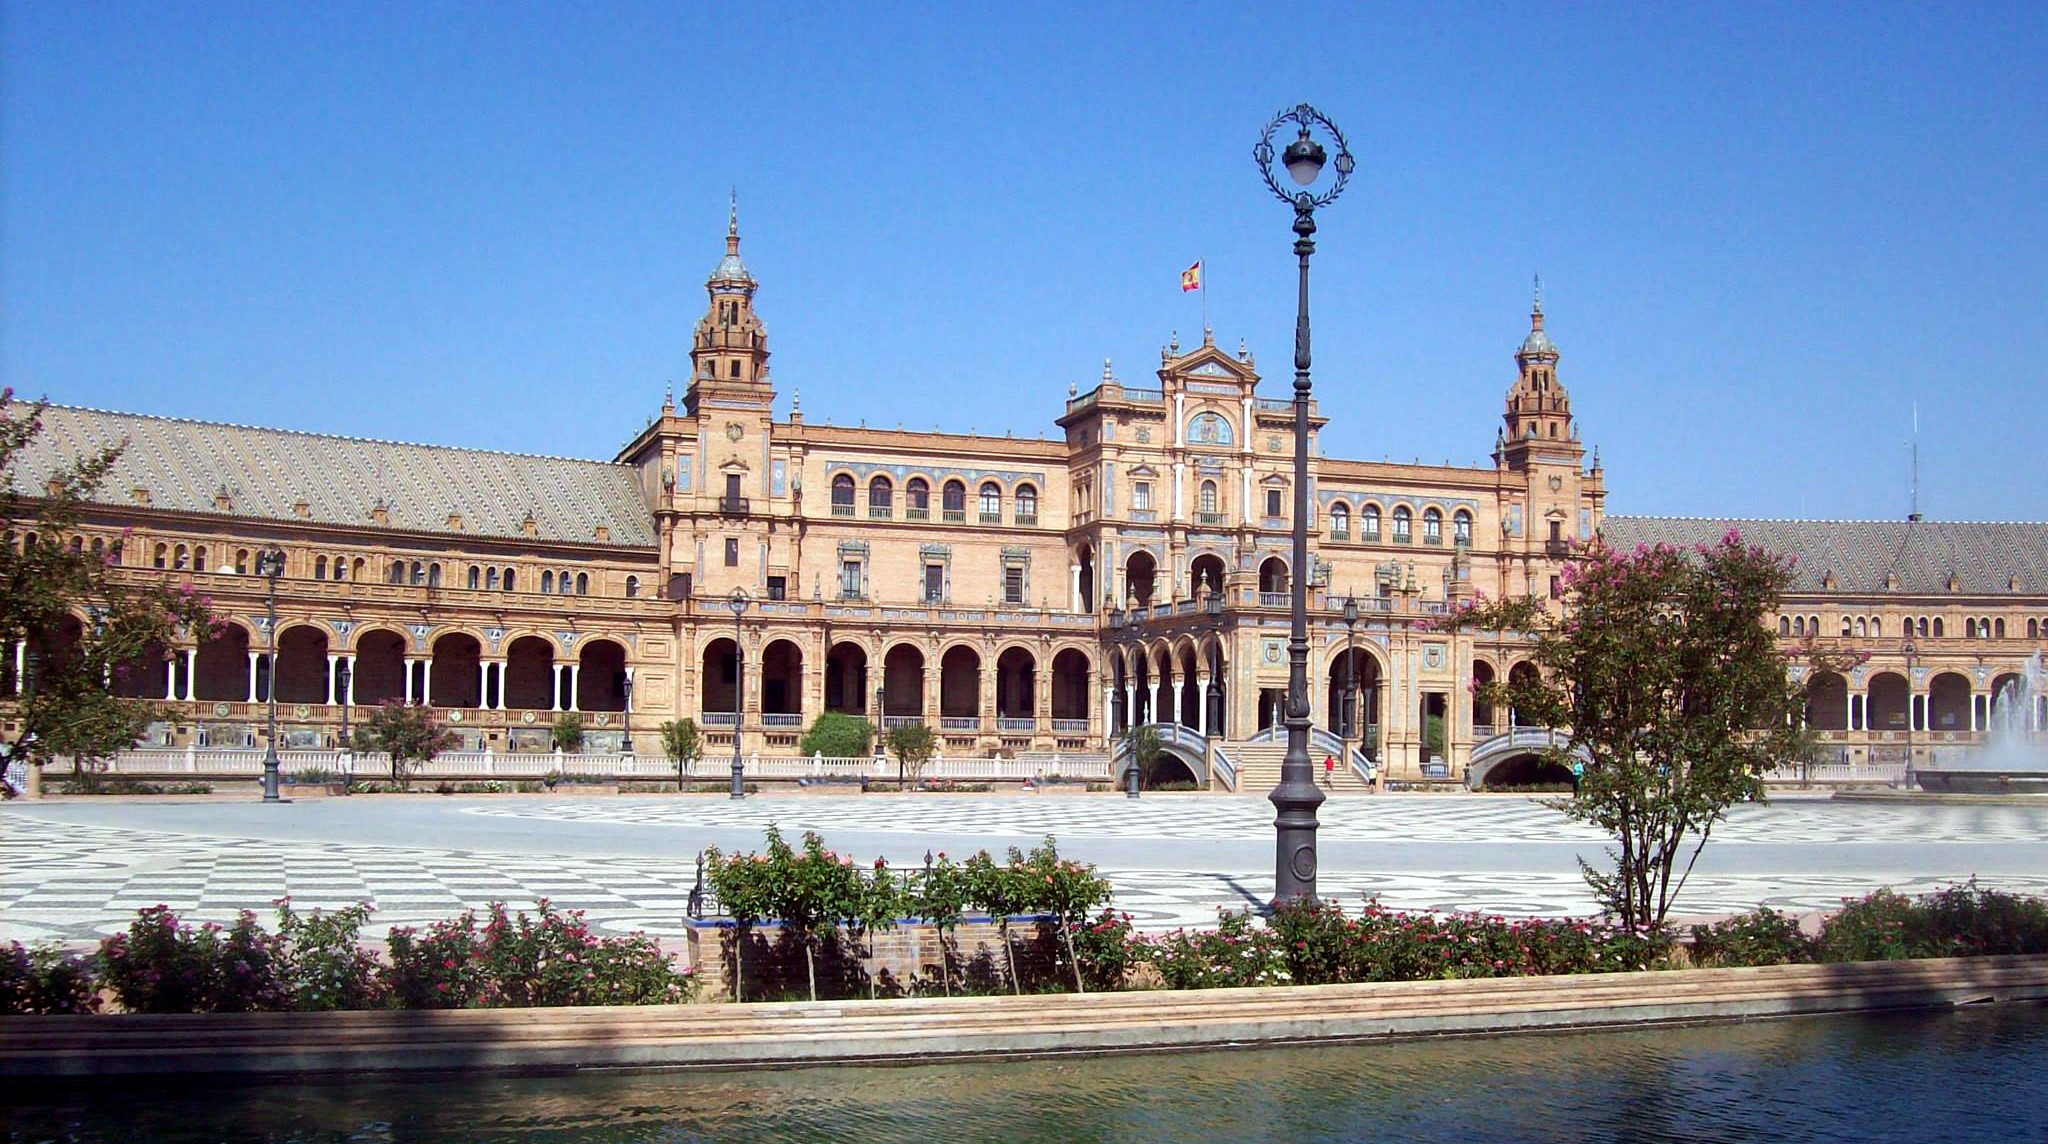 Plaza de España / Spain Square (Seville) - The best places in Spain